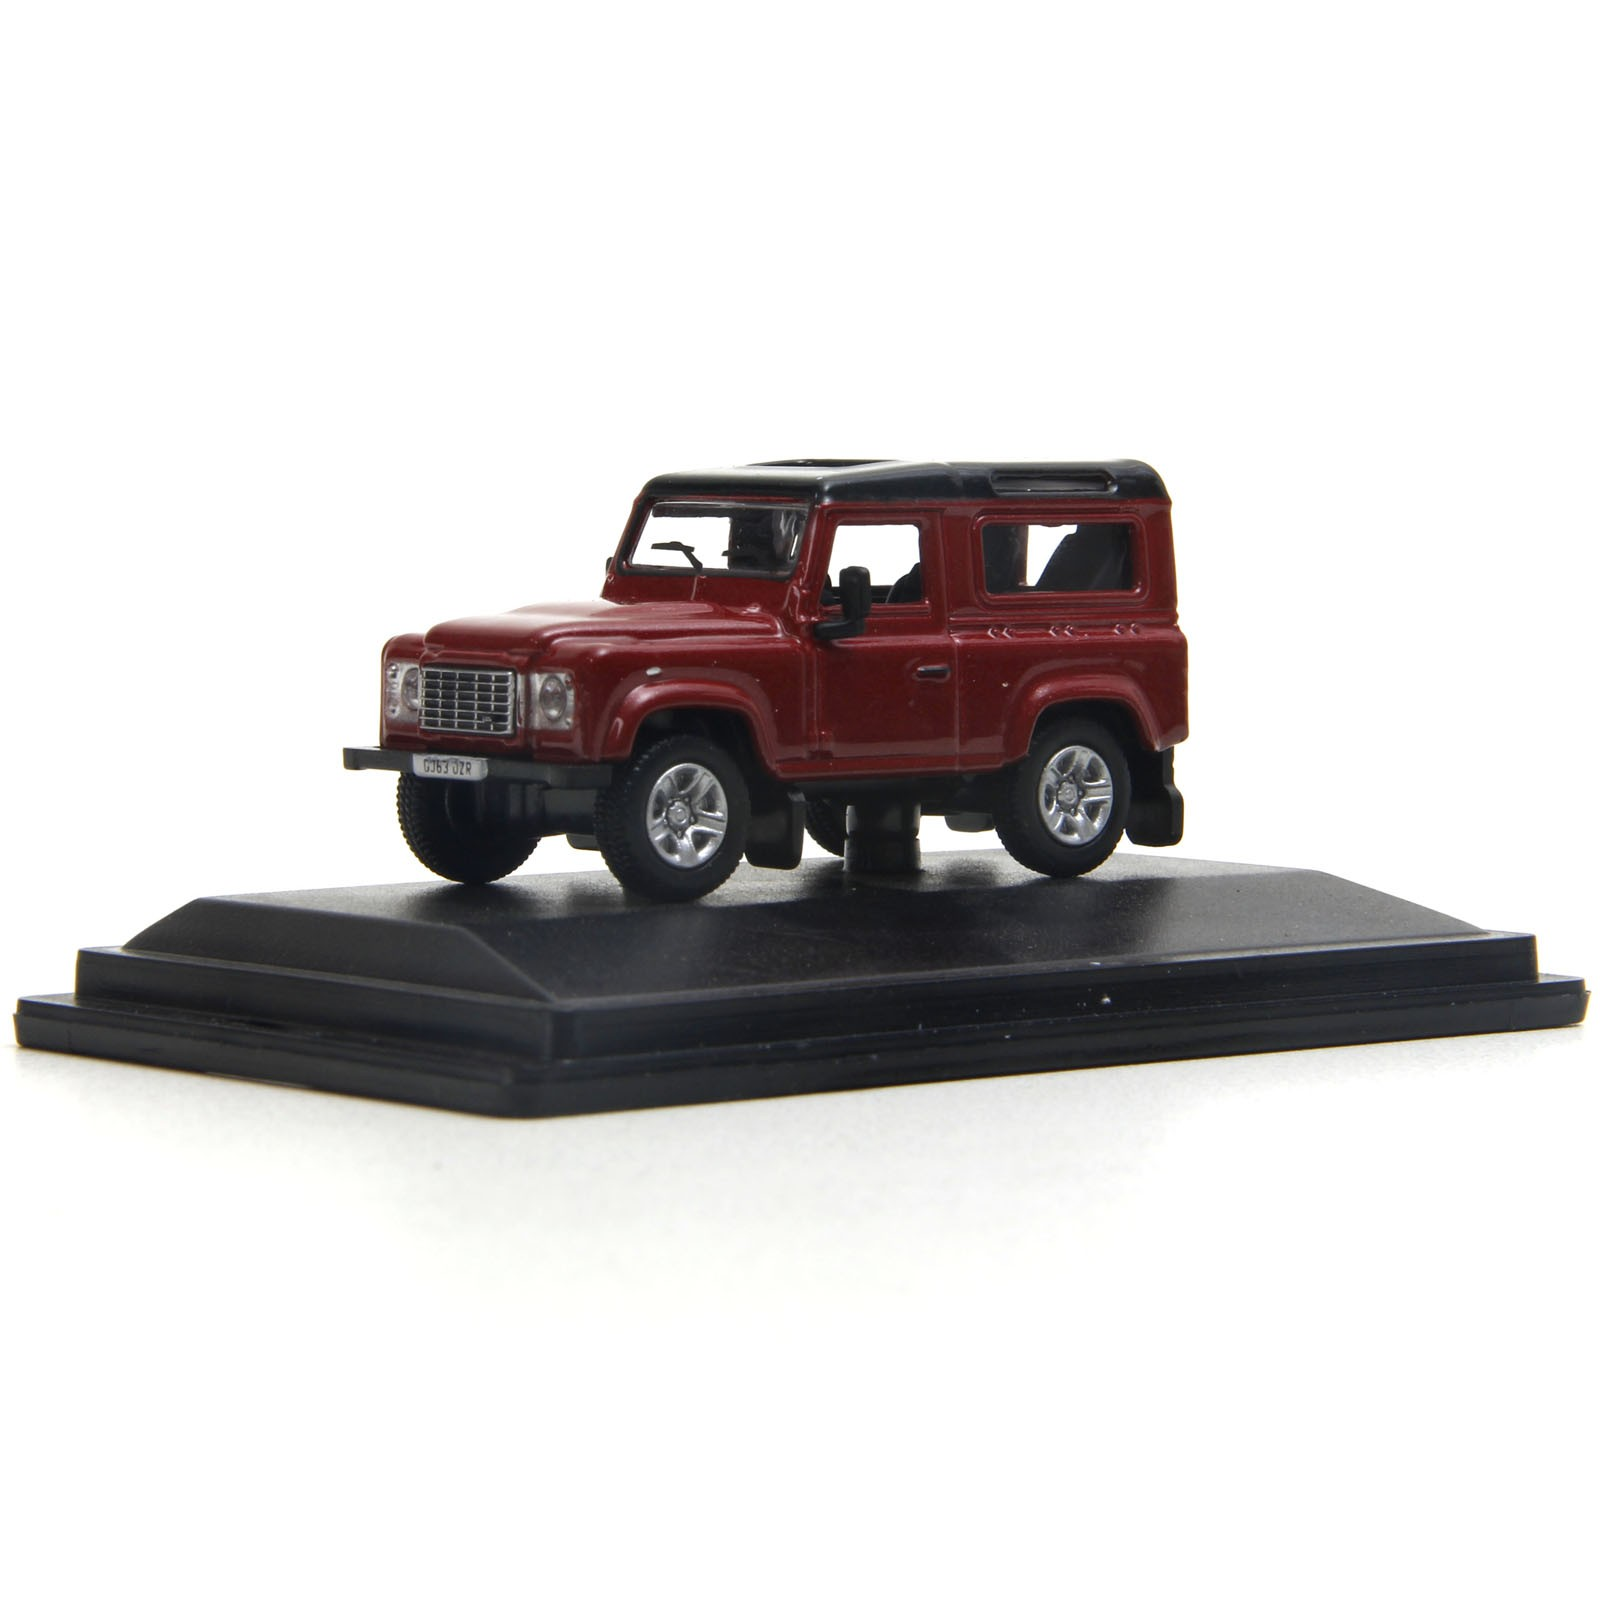 Miniatura em Metal - 1:76 - Land Rover Defender 90 - Firenze Red